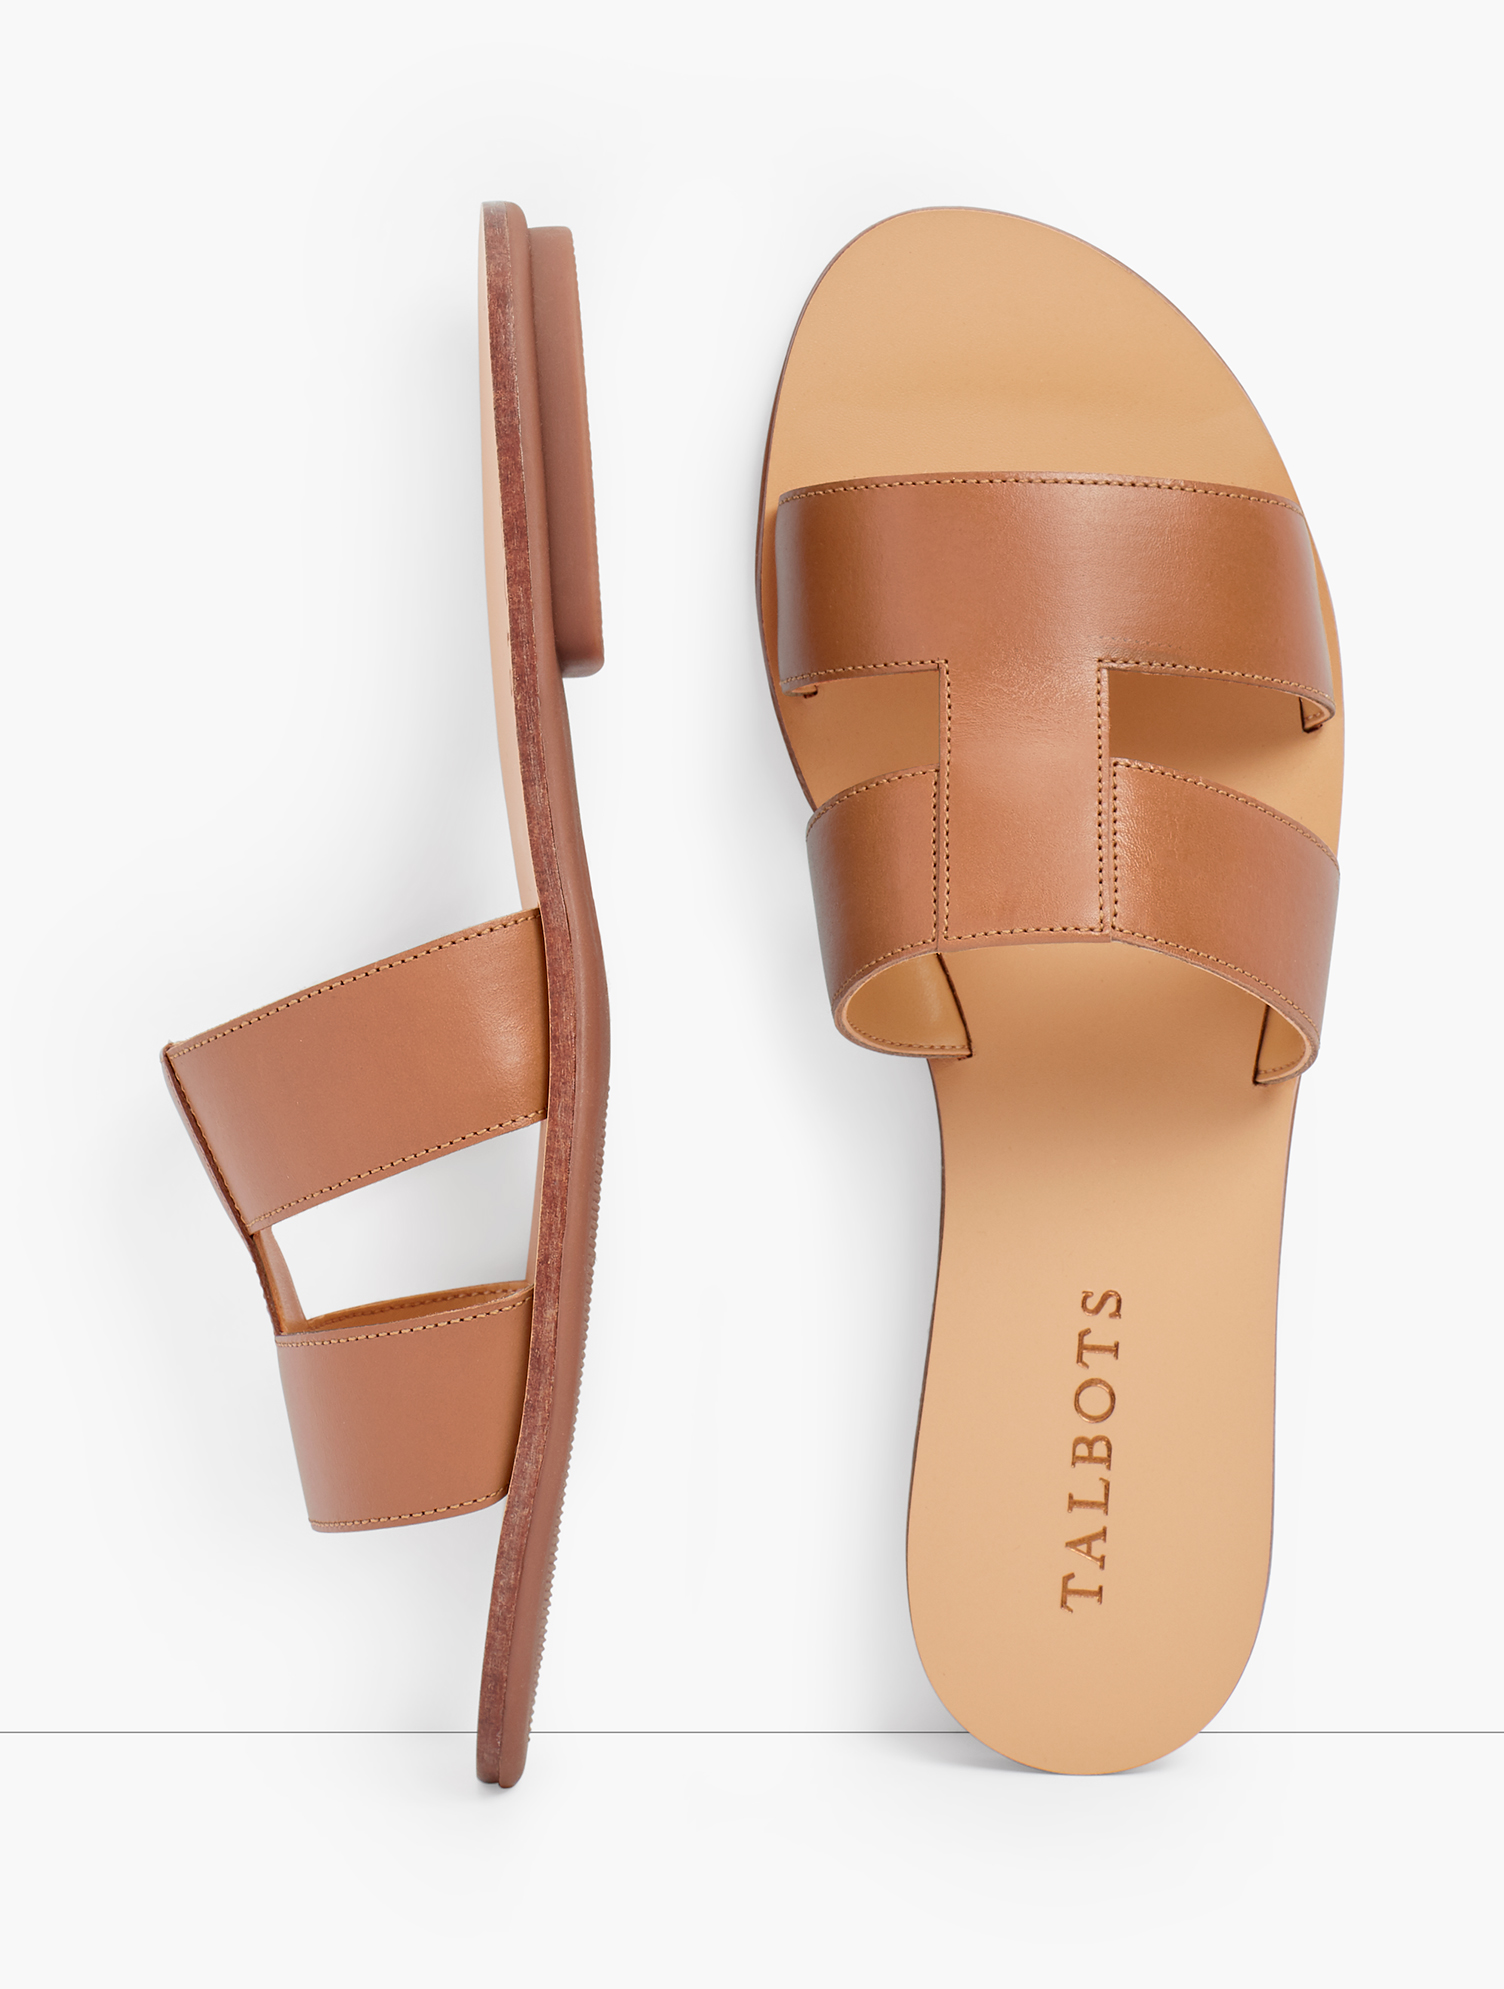 Luxe Vachetta leather slides. With geometric flair. A chic and easy go-to any day of the week. Features Gift Box/Gift Wrap is not available for this item 1/3 inches heel Rubber Sole Imported Material: 100% Leather Hannah Vachetta Leather Slides - Havana Tan - 11M Talbots